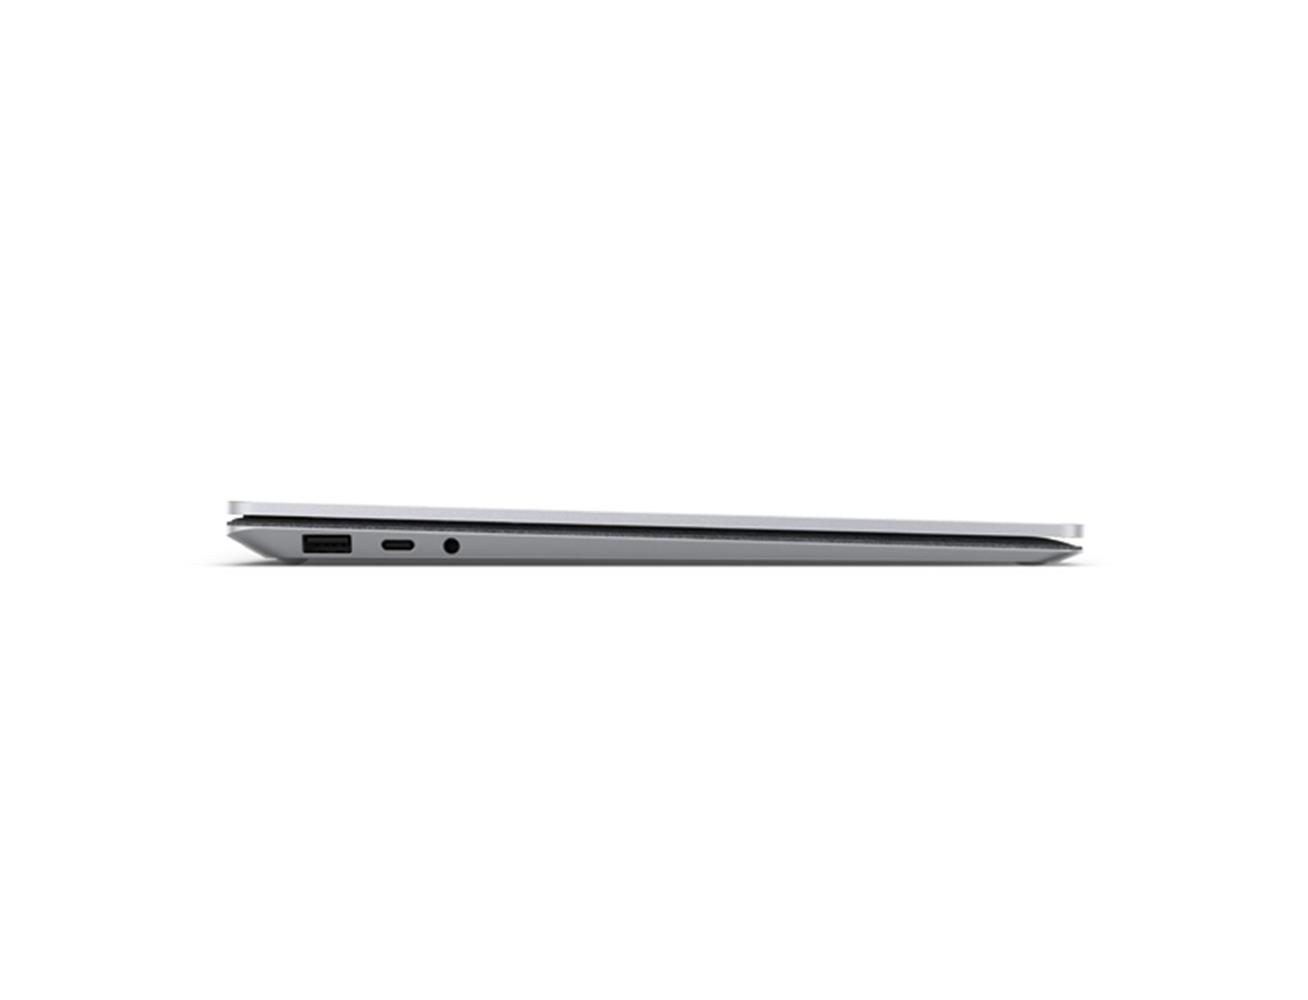 Wholesale SURFACE LAPTOP3 Notebook - PKH-00013_3